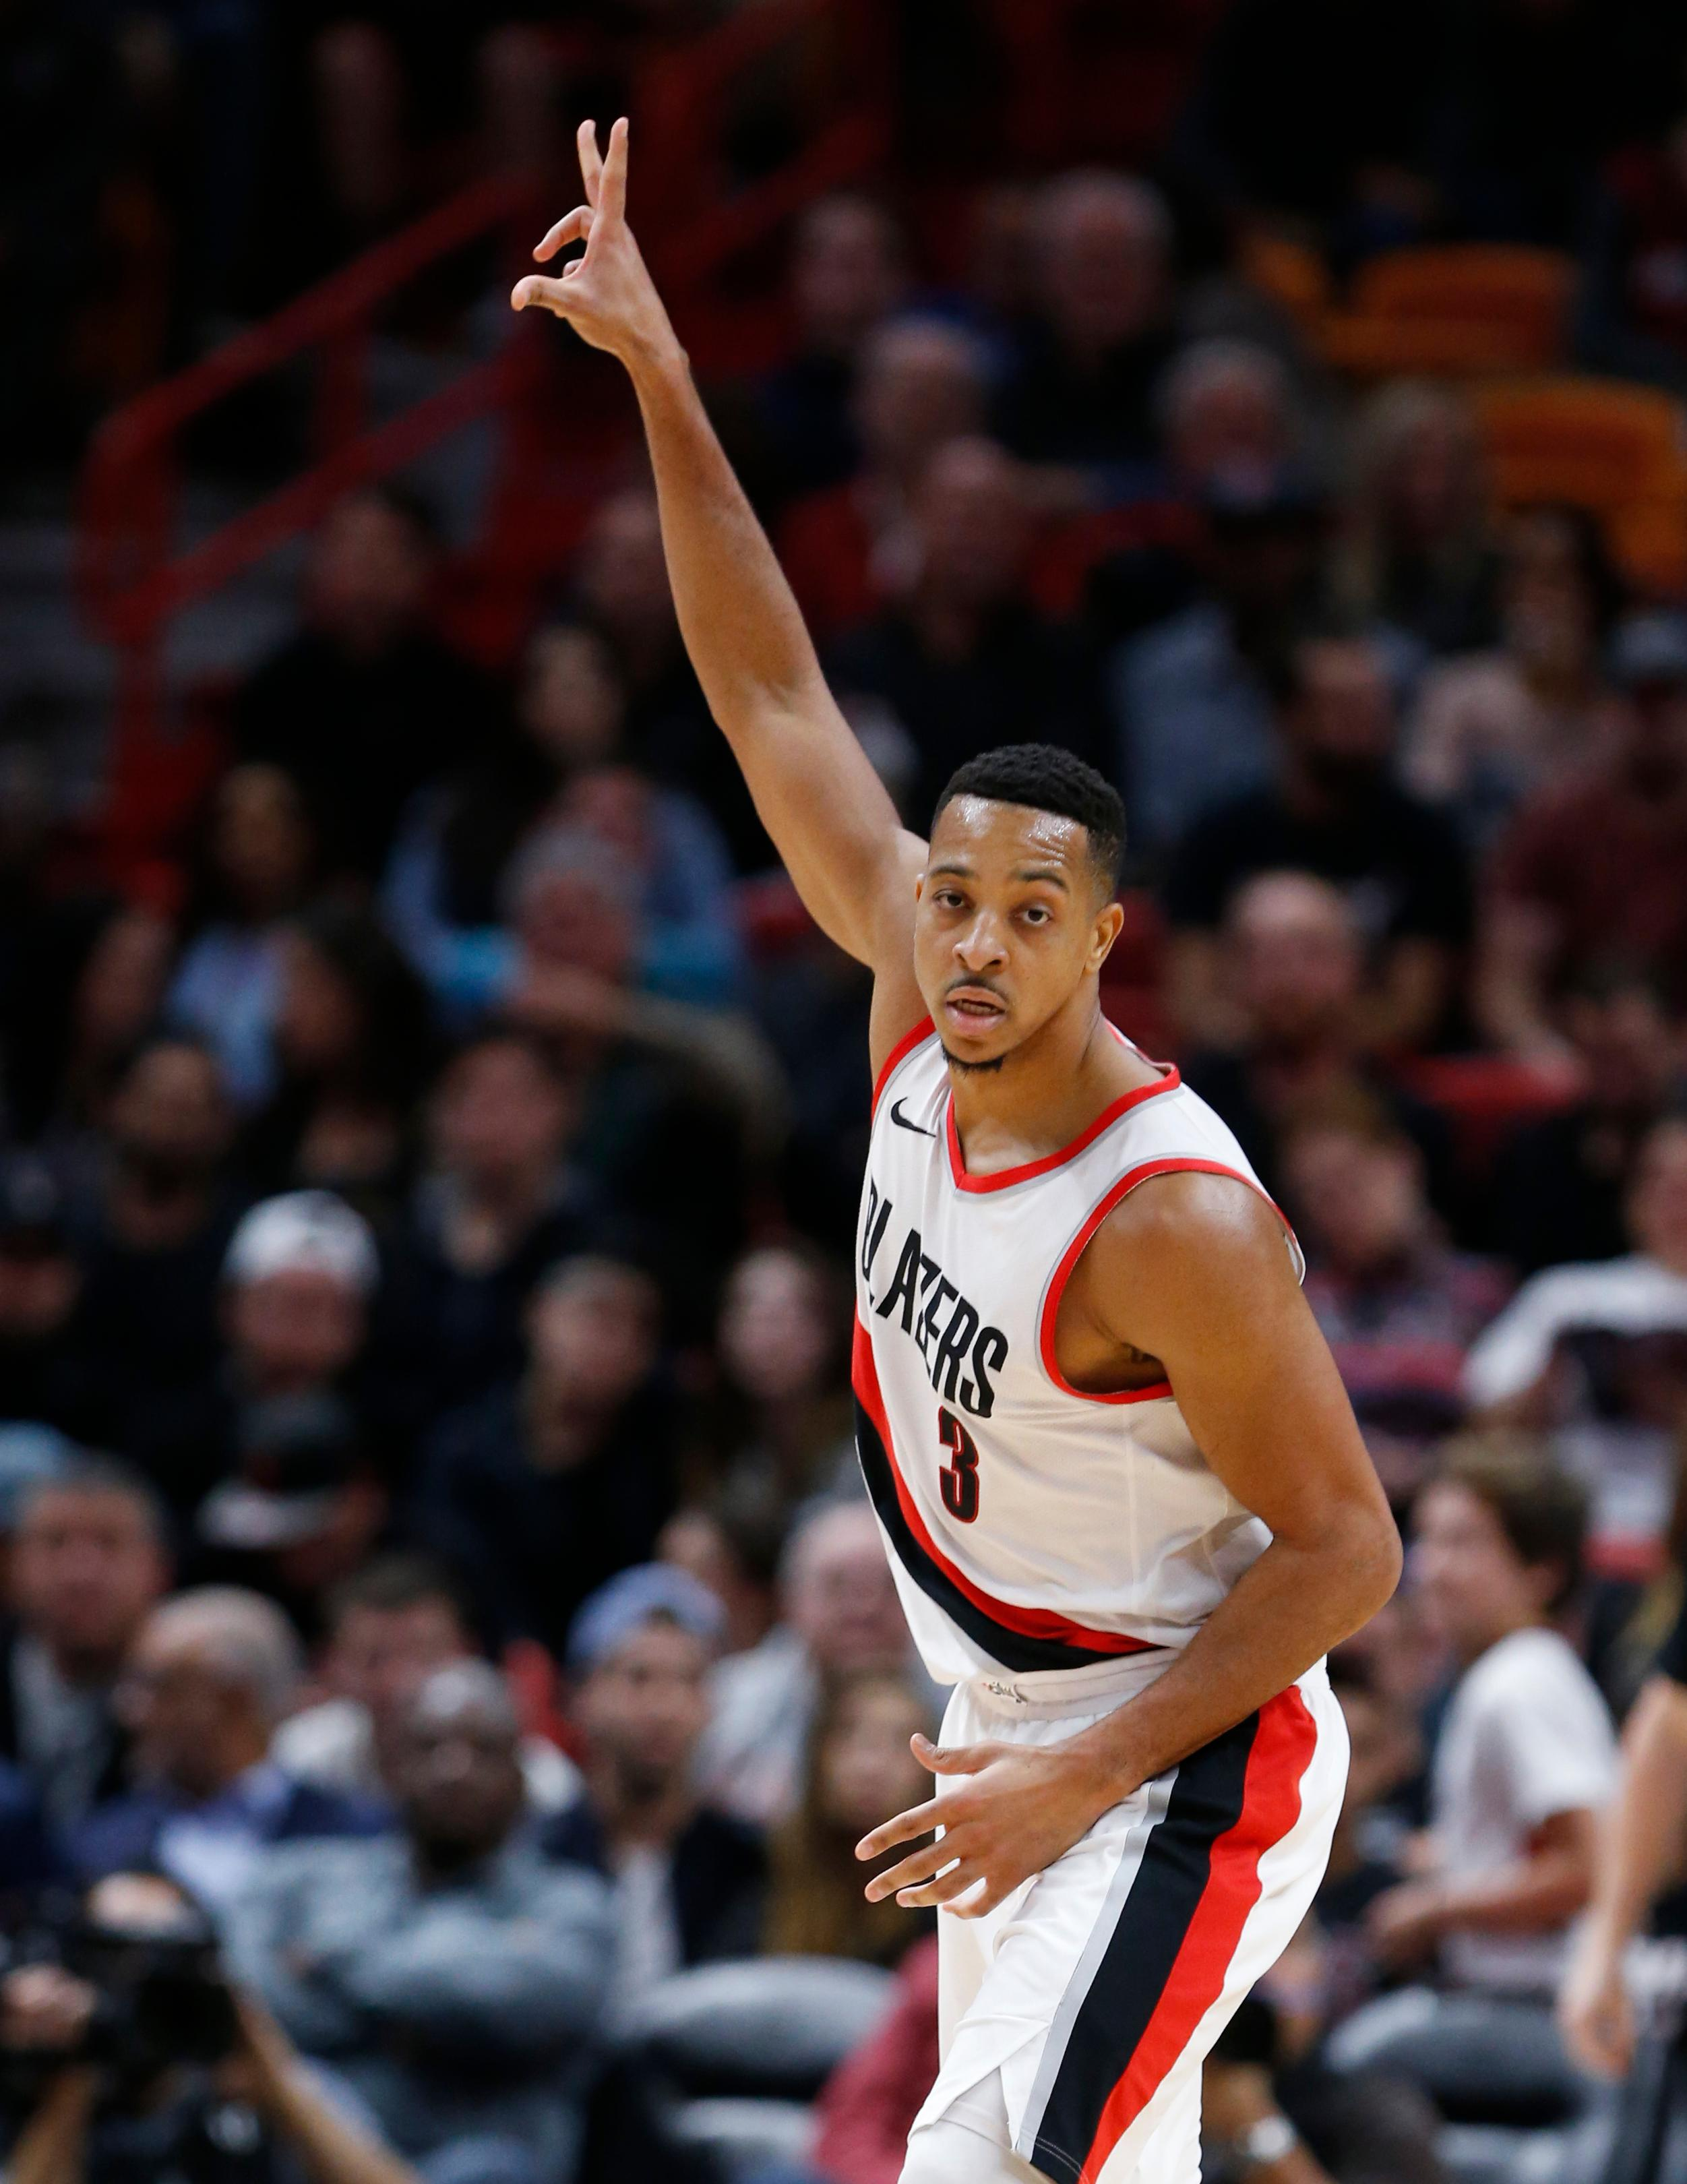 Portland Trail Blazers guard C.J. McCollum celebrates after hitting a three-point shot during the first half of an NBA basketball game against the Miami Heat, Wednesday, Dec. 13, 2017, in Miami. (AP Photo/Wilfredo Lee)